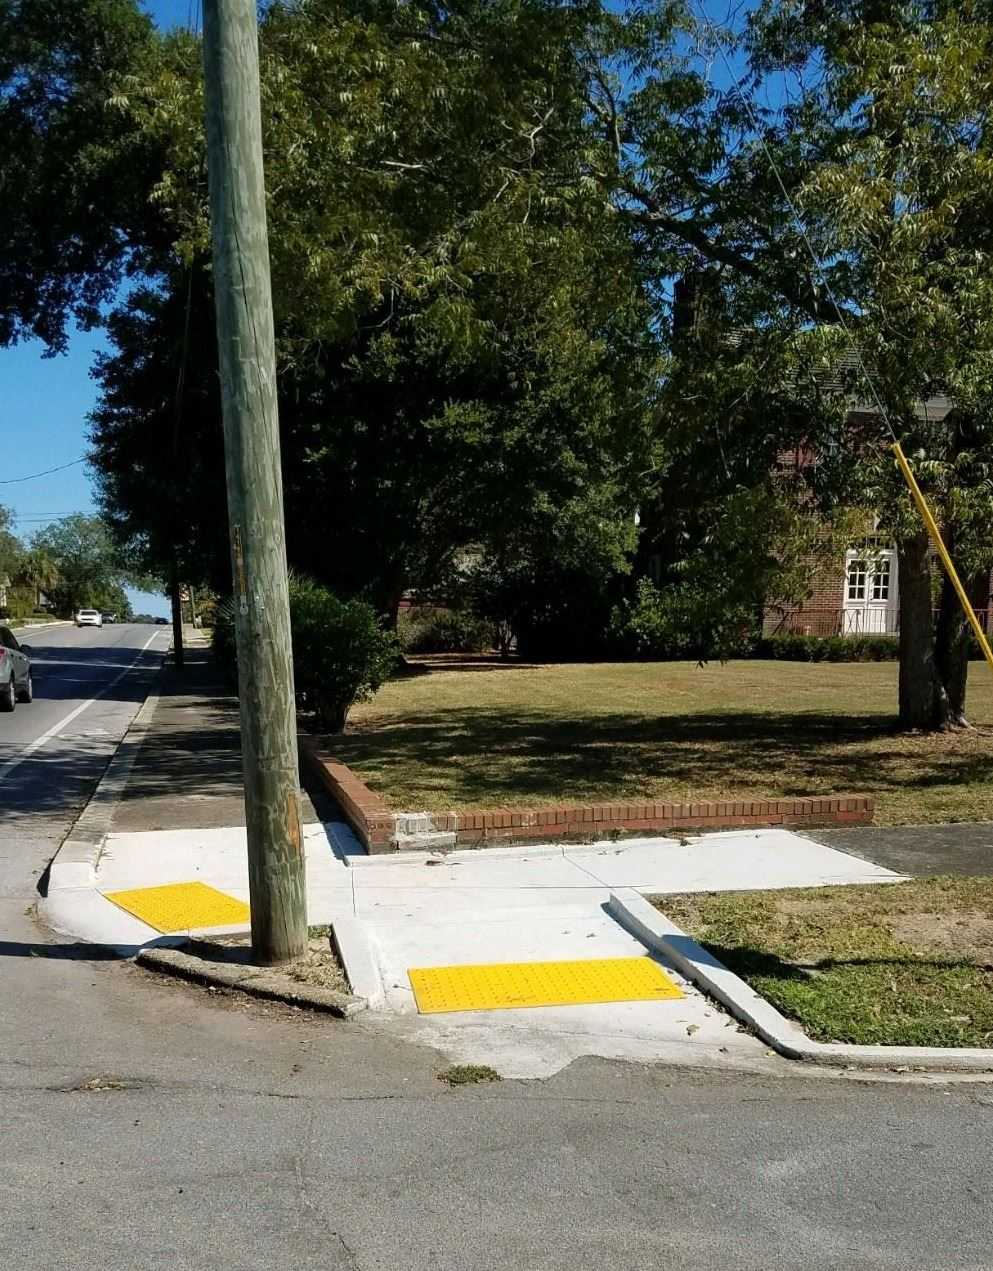 A new curb ramp on a sidewalk